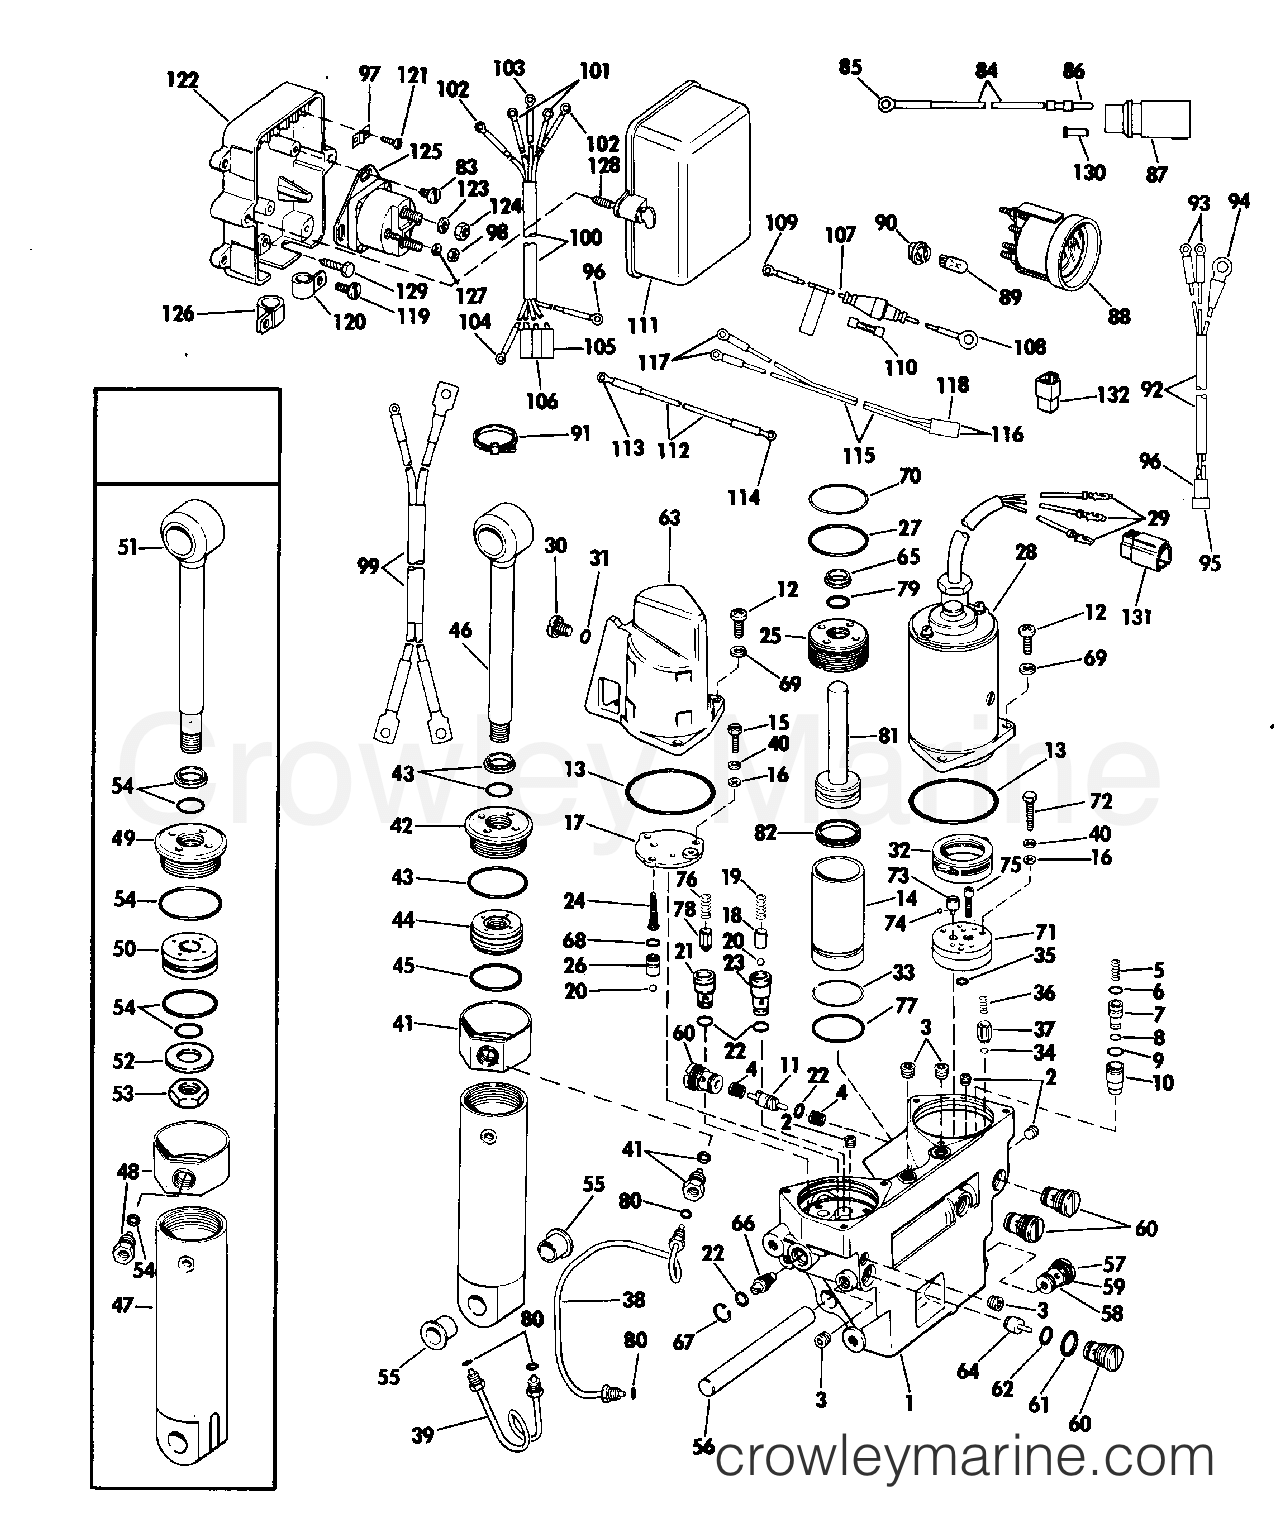 26 Johnson Tilt And Trim Diagram